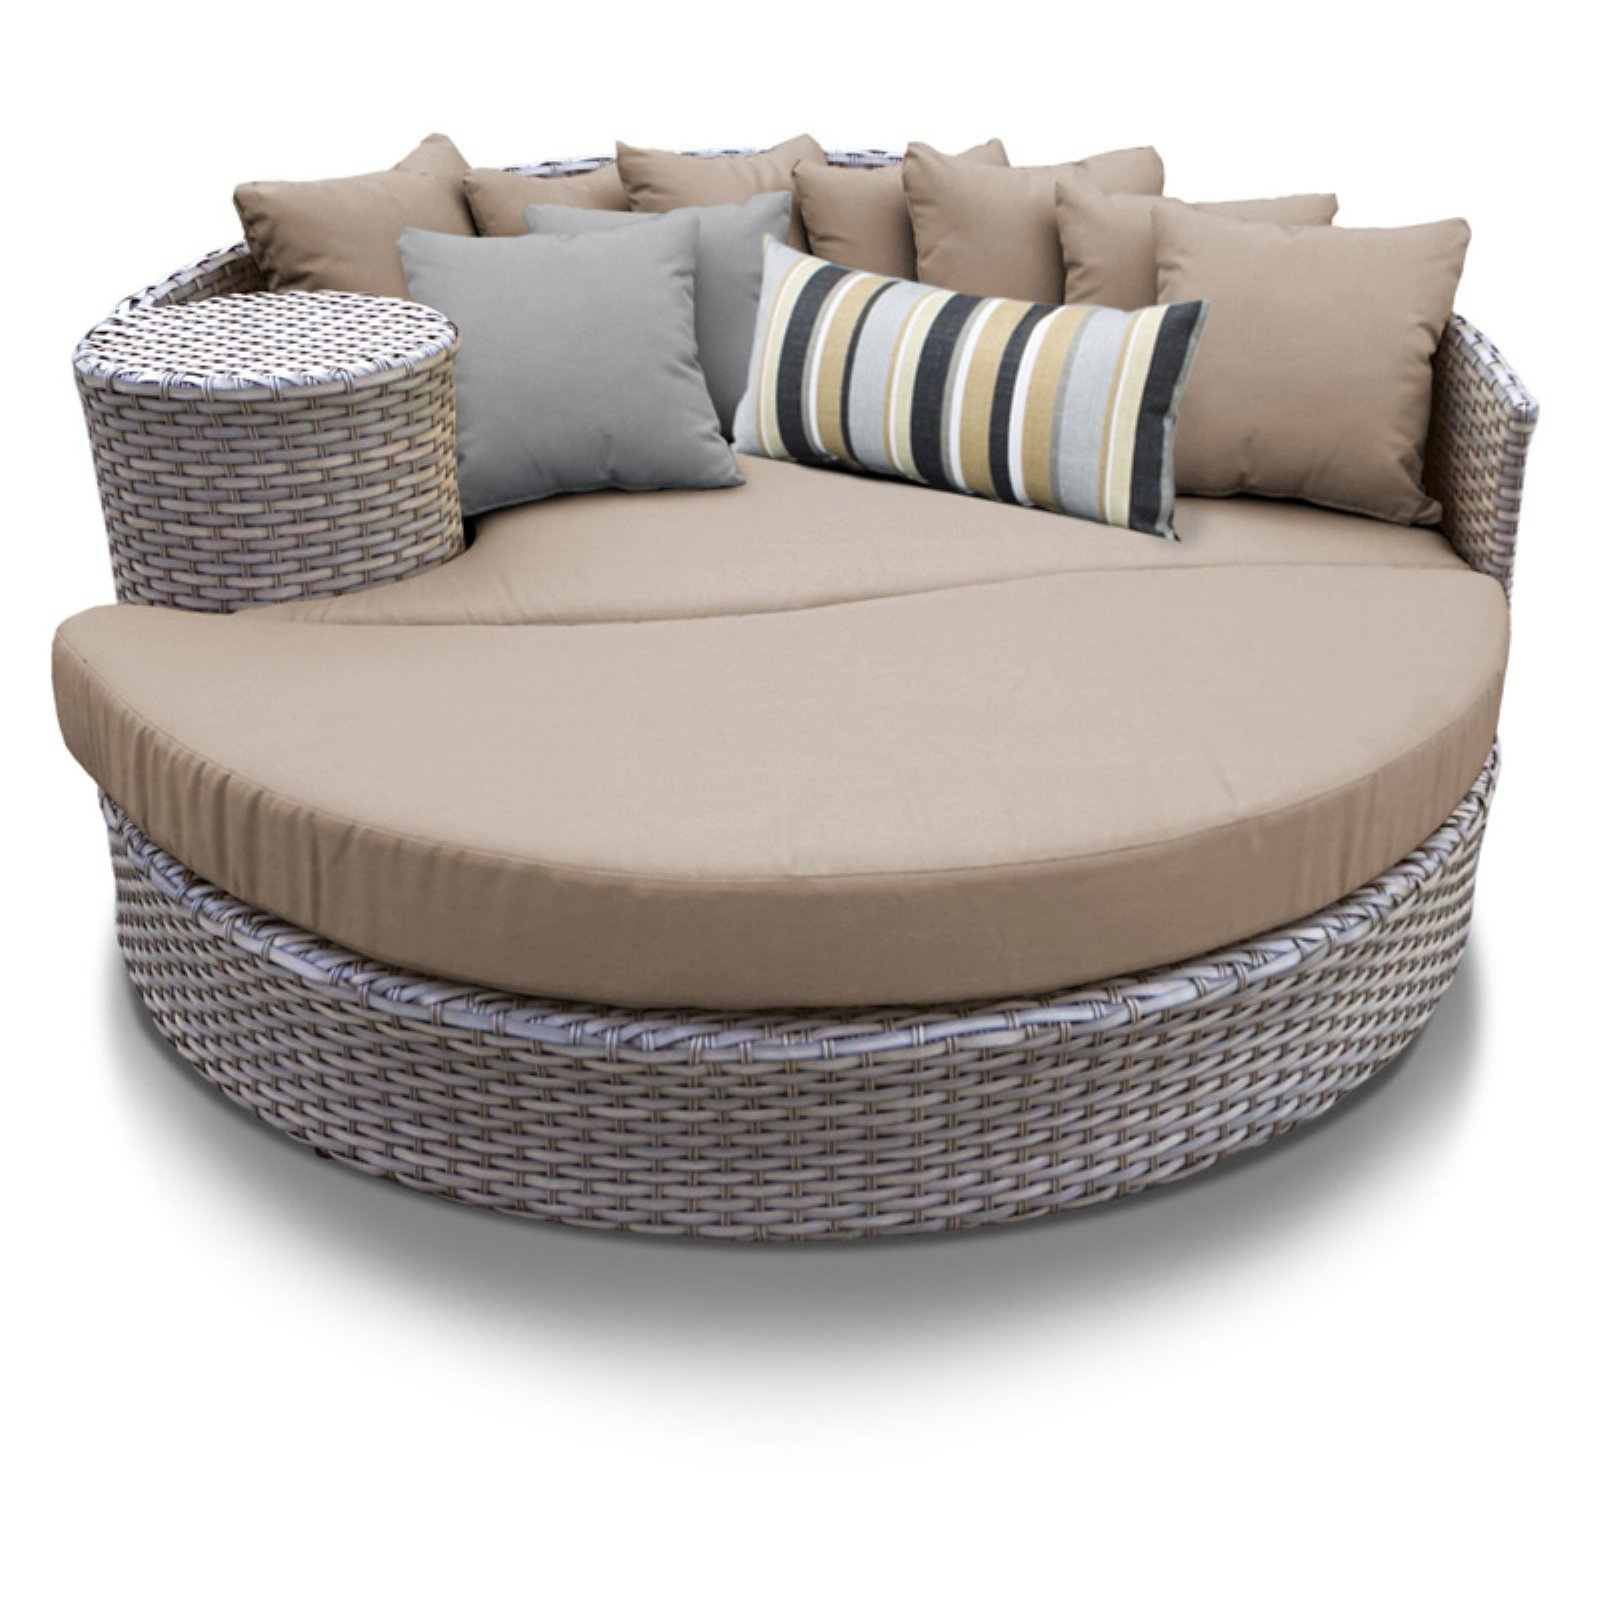 TK Classics Oasis Outdoor Wicker Sun Bed